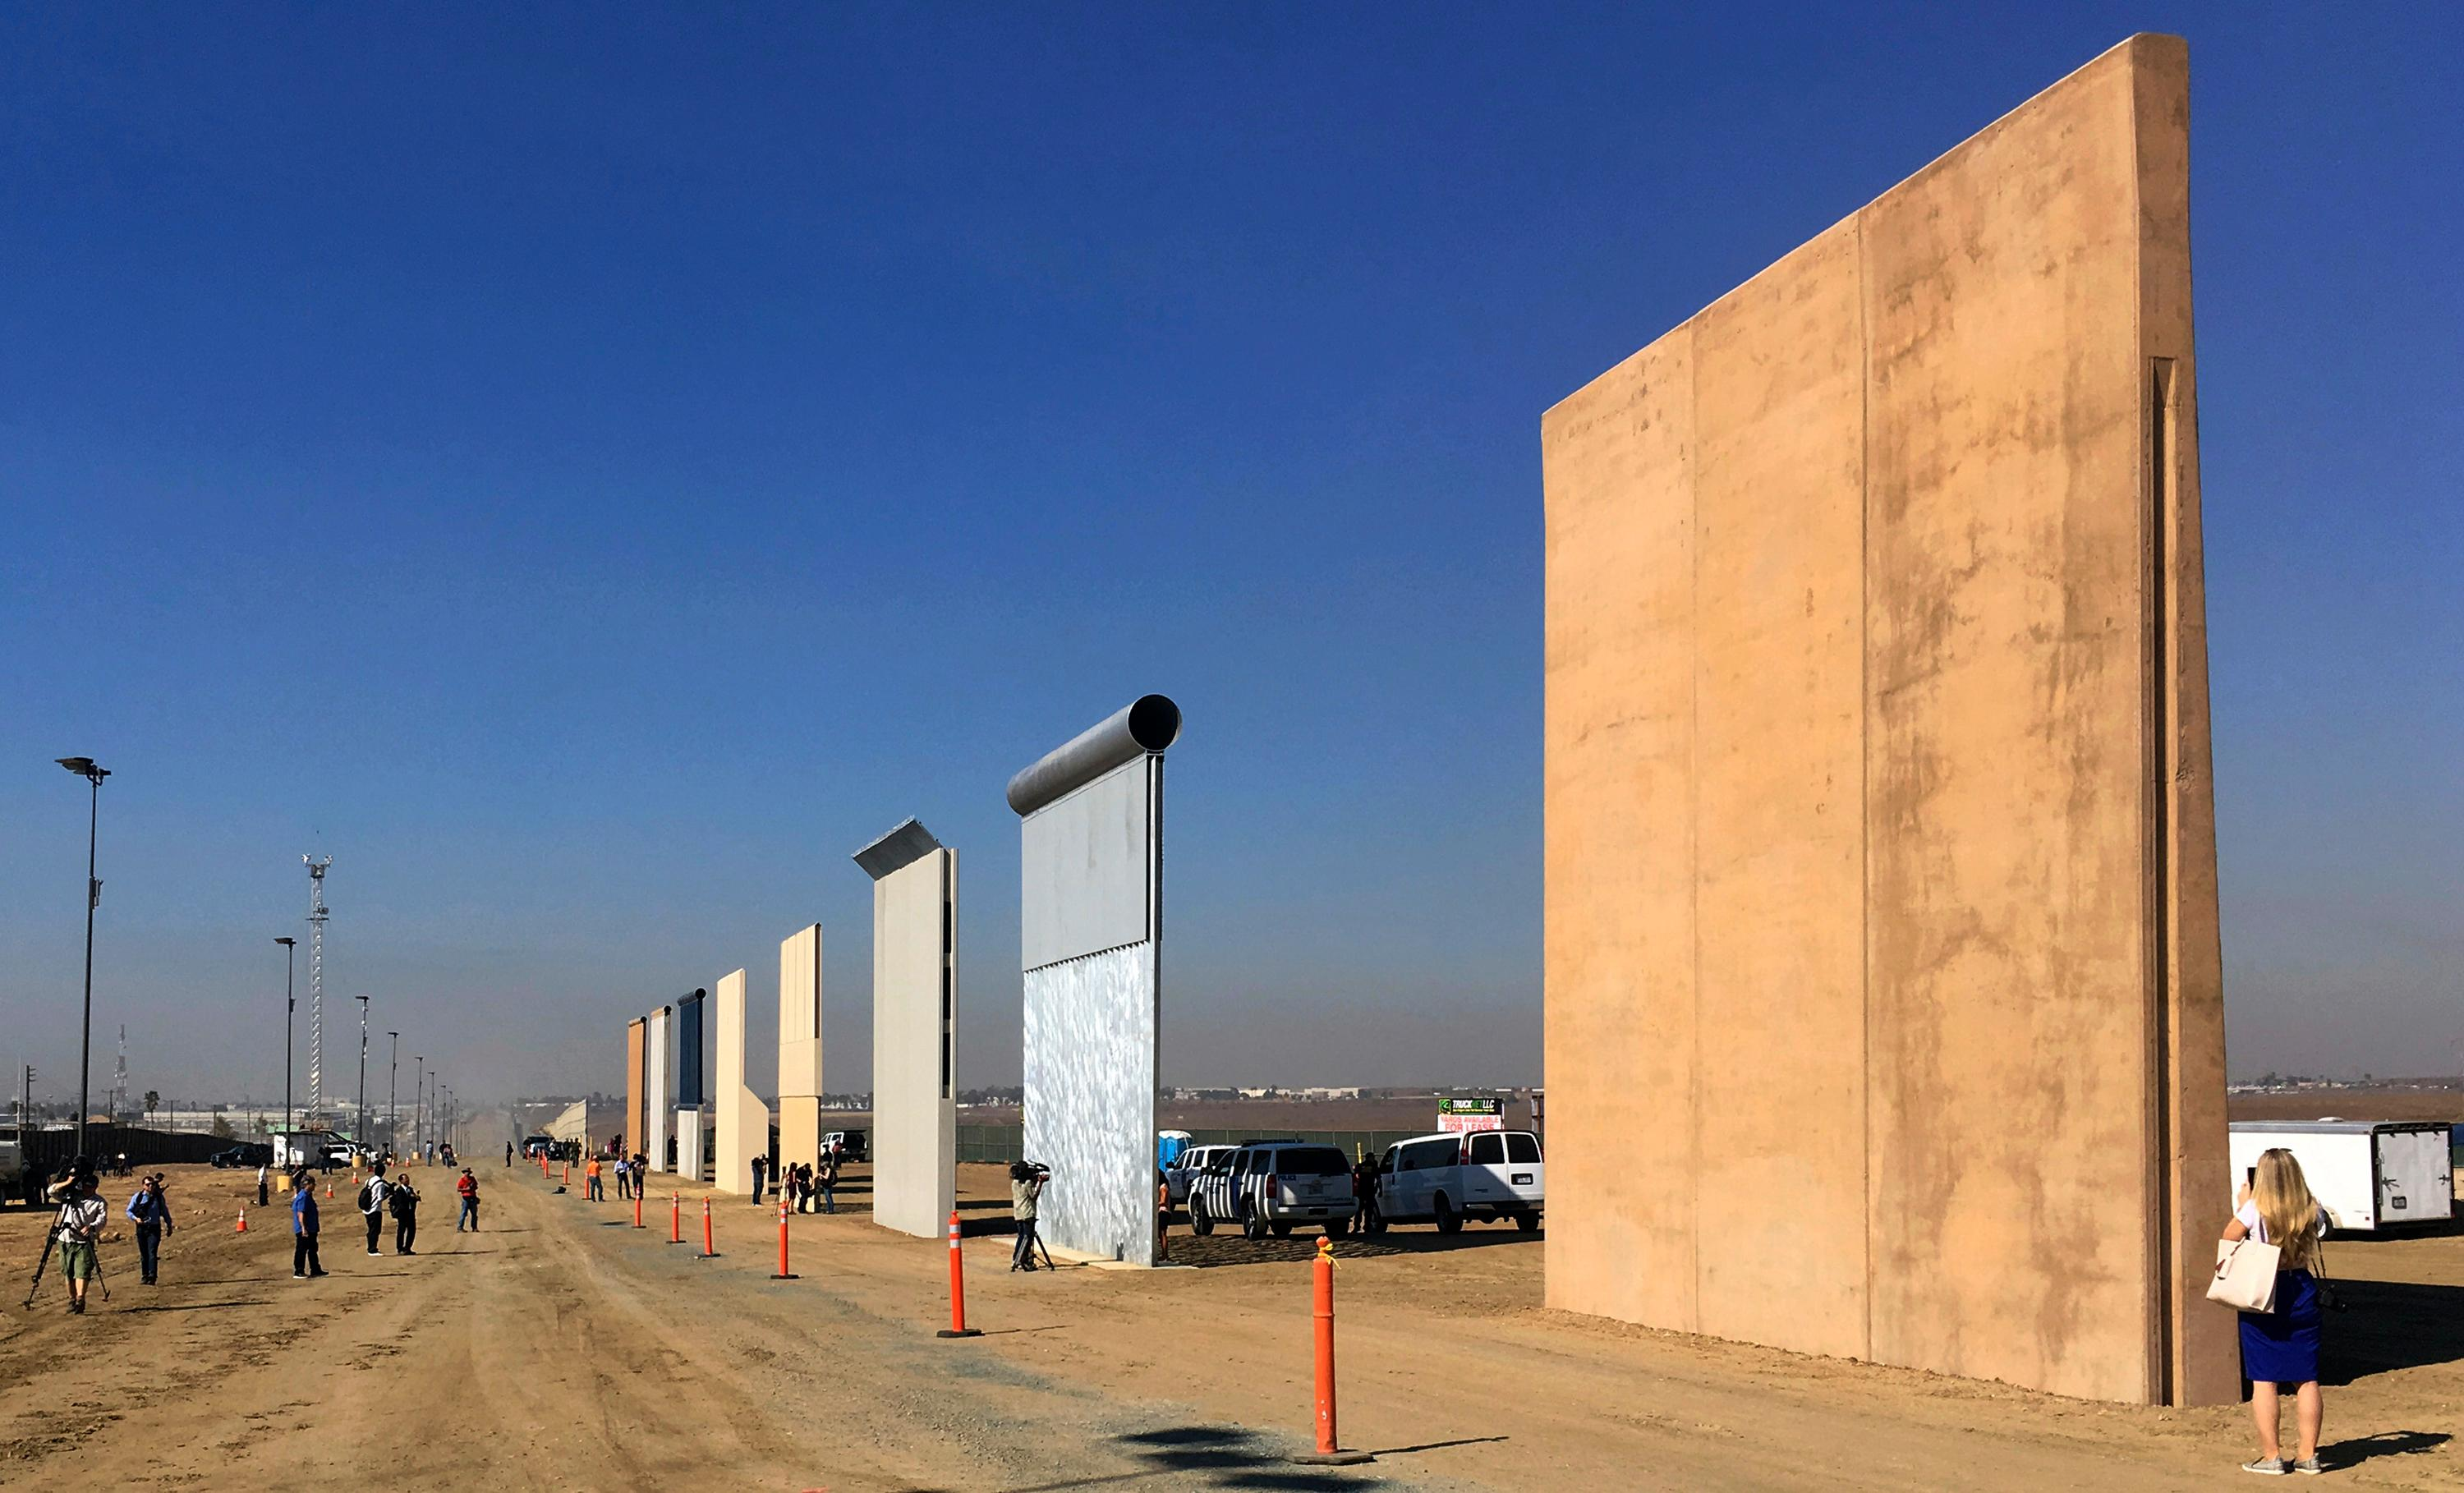 FILE - This Oct. 26, 2017 file photo shows prototypes of border walls in San Diego. The Trump administration has proposed spending $18 billion over 10 years to significantly extend the border wall with Mexico. (AP Photo/Elliott Spagat, File)<p></p>